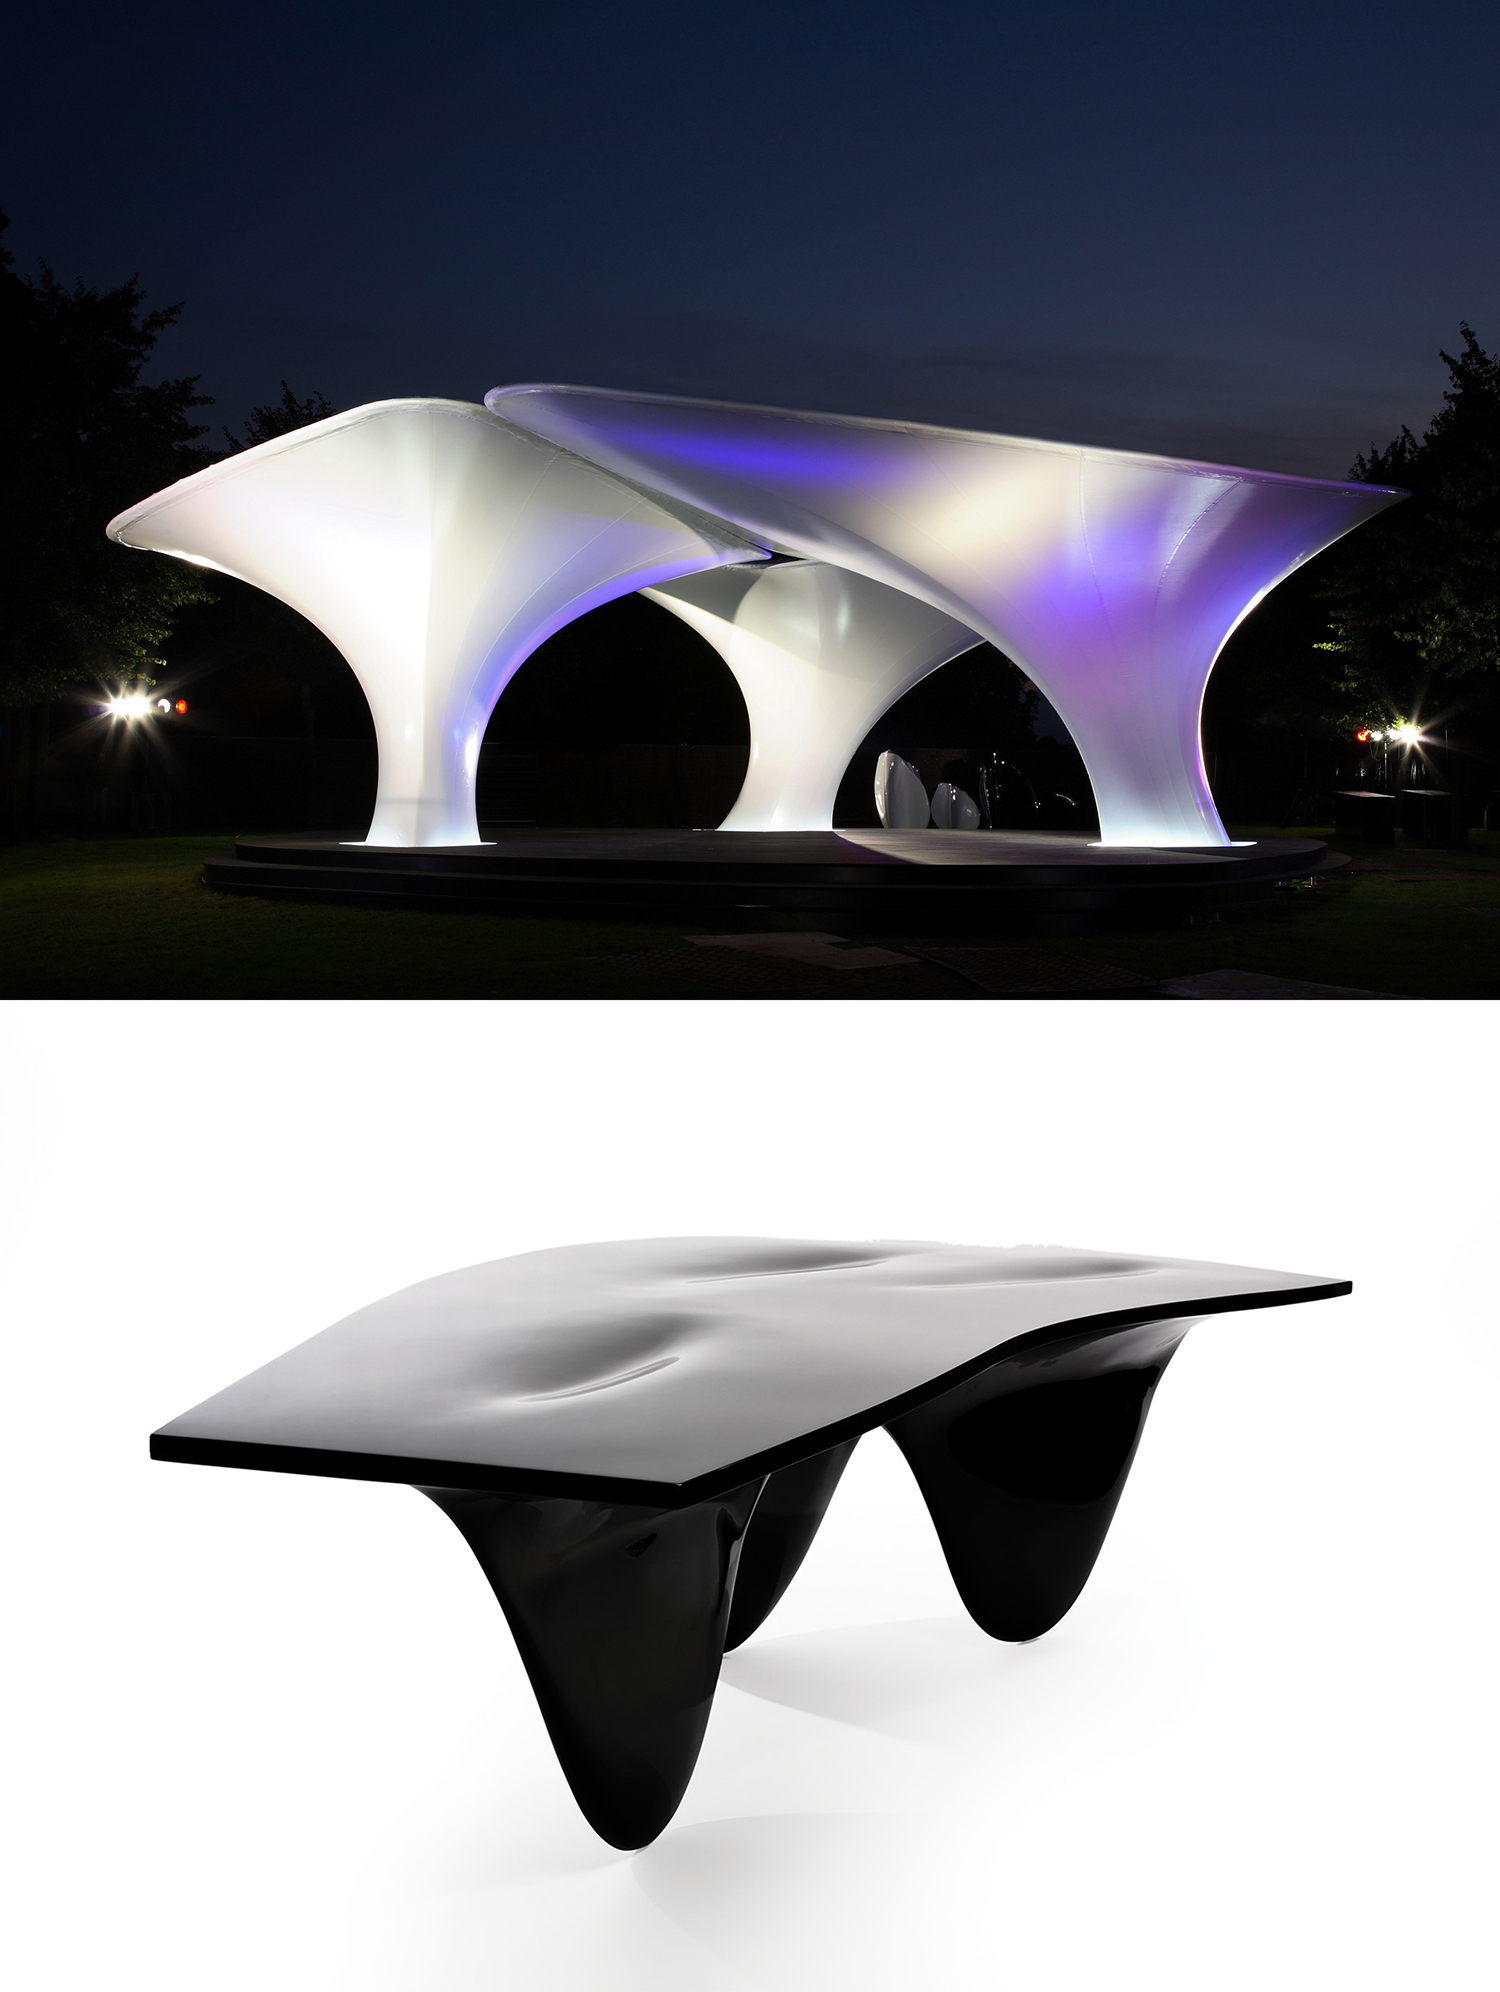 Zaha Hadid, Pavilion/Aqua Table, 2005. When a Zaha table looks just like a Zaha building, then you know you are in some kind of trouble — a visual comparison made by Jeremy Till in his 'Beyond the Fountainhead' lecture, indicating how some of the current values of contemporary architecture are so close to pure shape making as to be indistinguishable form that of furniture design (image credit: Peter Guenzel; Luke Hayes).